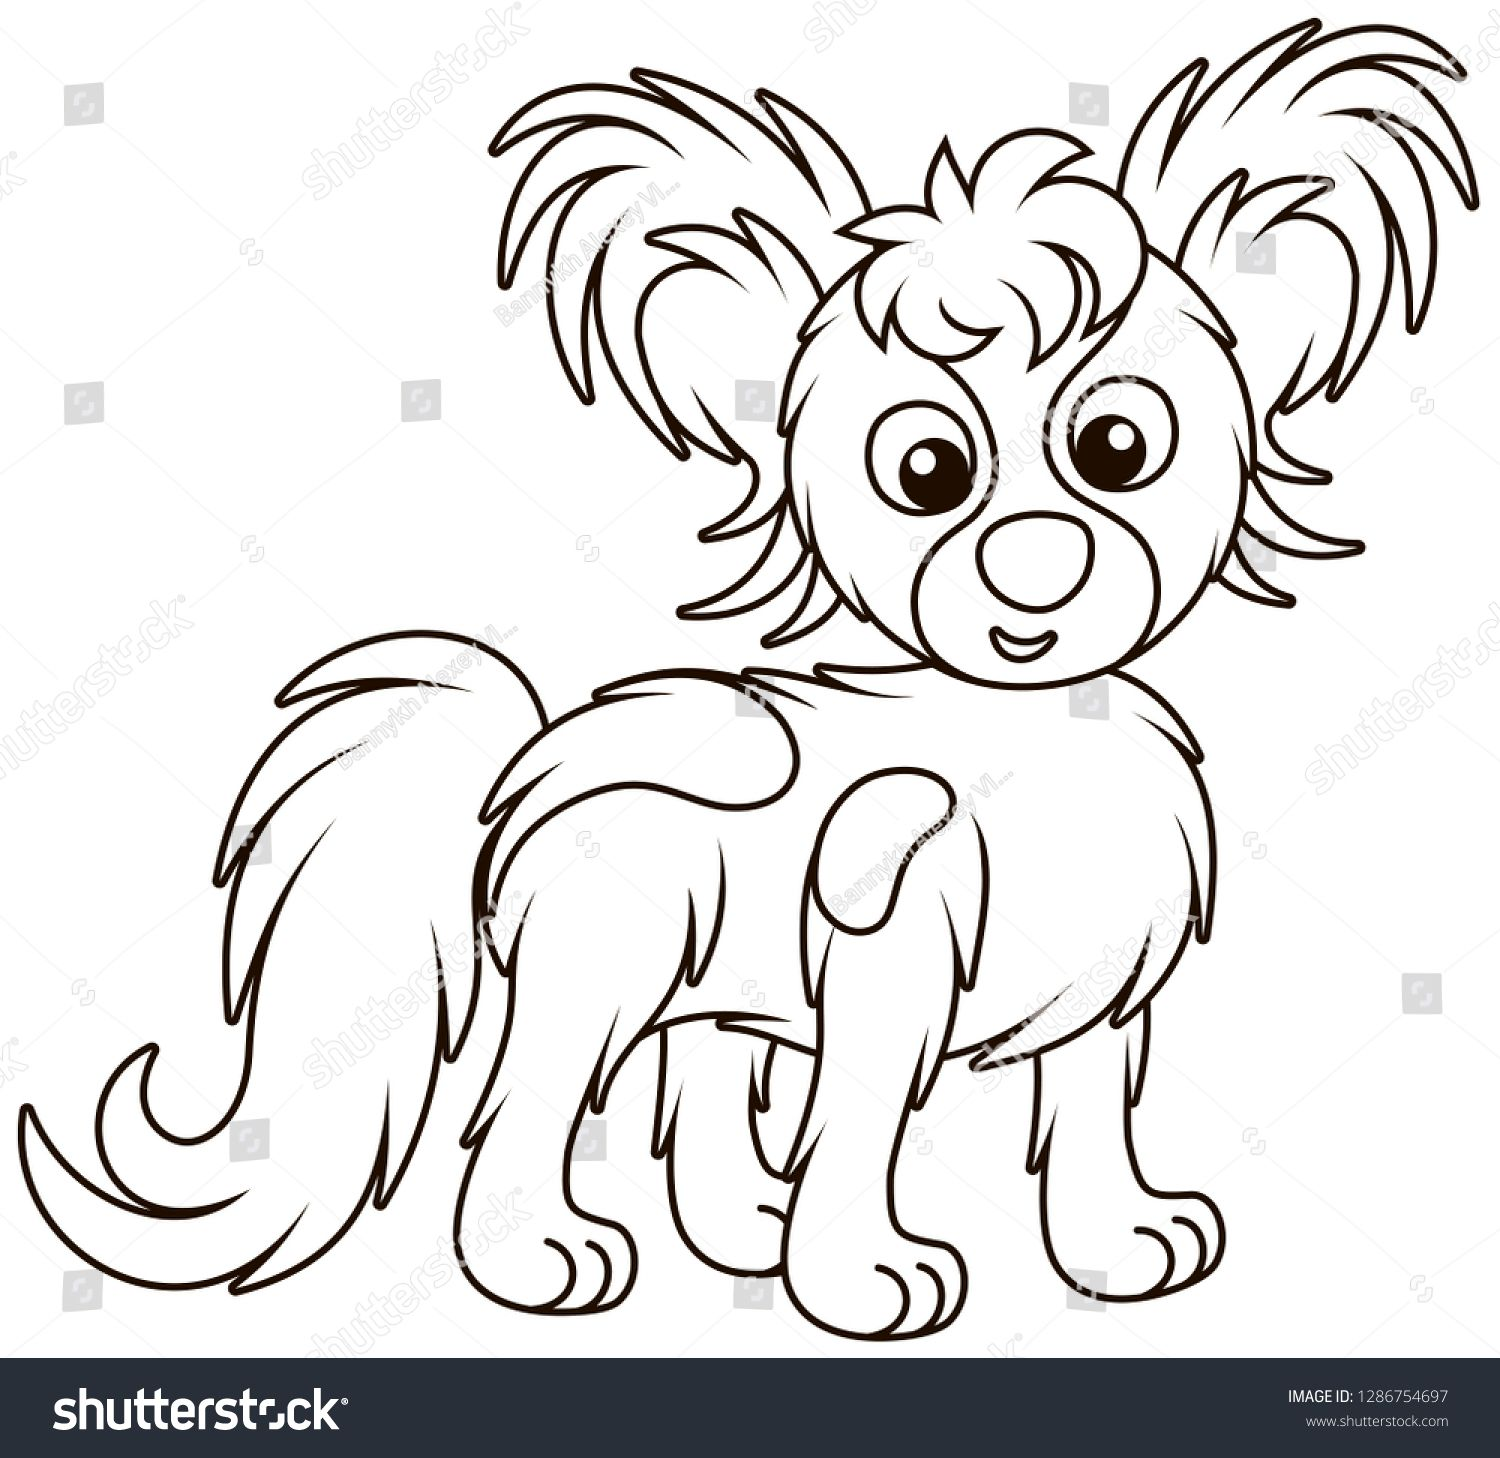 Small Funny Dog Papillon Friendly Smiling Black And White Outline Vector Illustrations In A Cartoon Style For A Coloring Cartoon Styles Funny Dogs Vector Free [ 1458 x 1500 Pixel ]